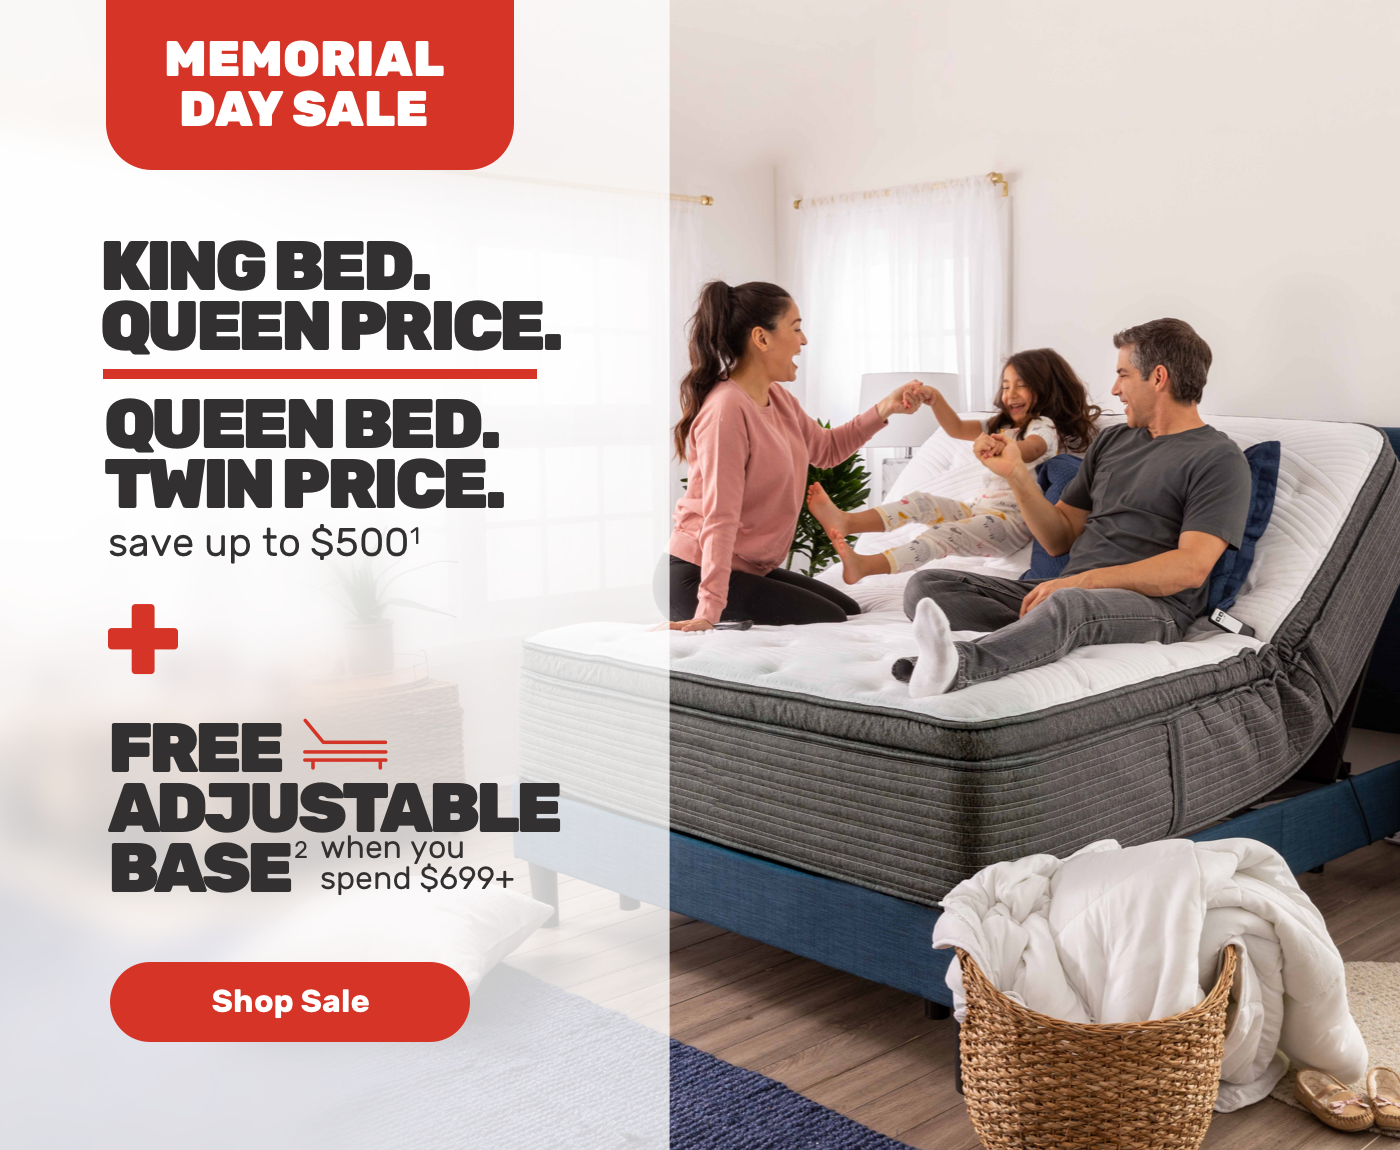 MEMORIAL DAY SALE-KING BED.QUEEN BED.save up to $500-FREE ADJUSTABLE BASE-when you spend $699+